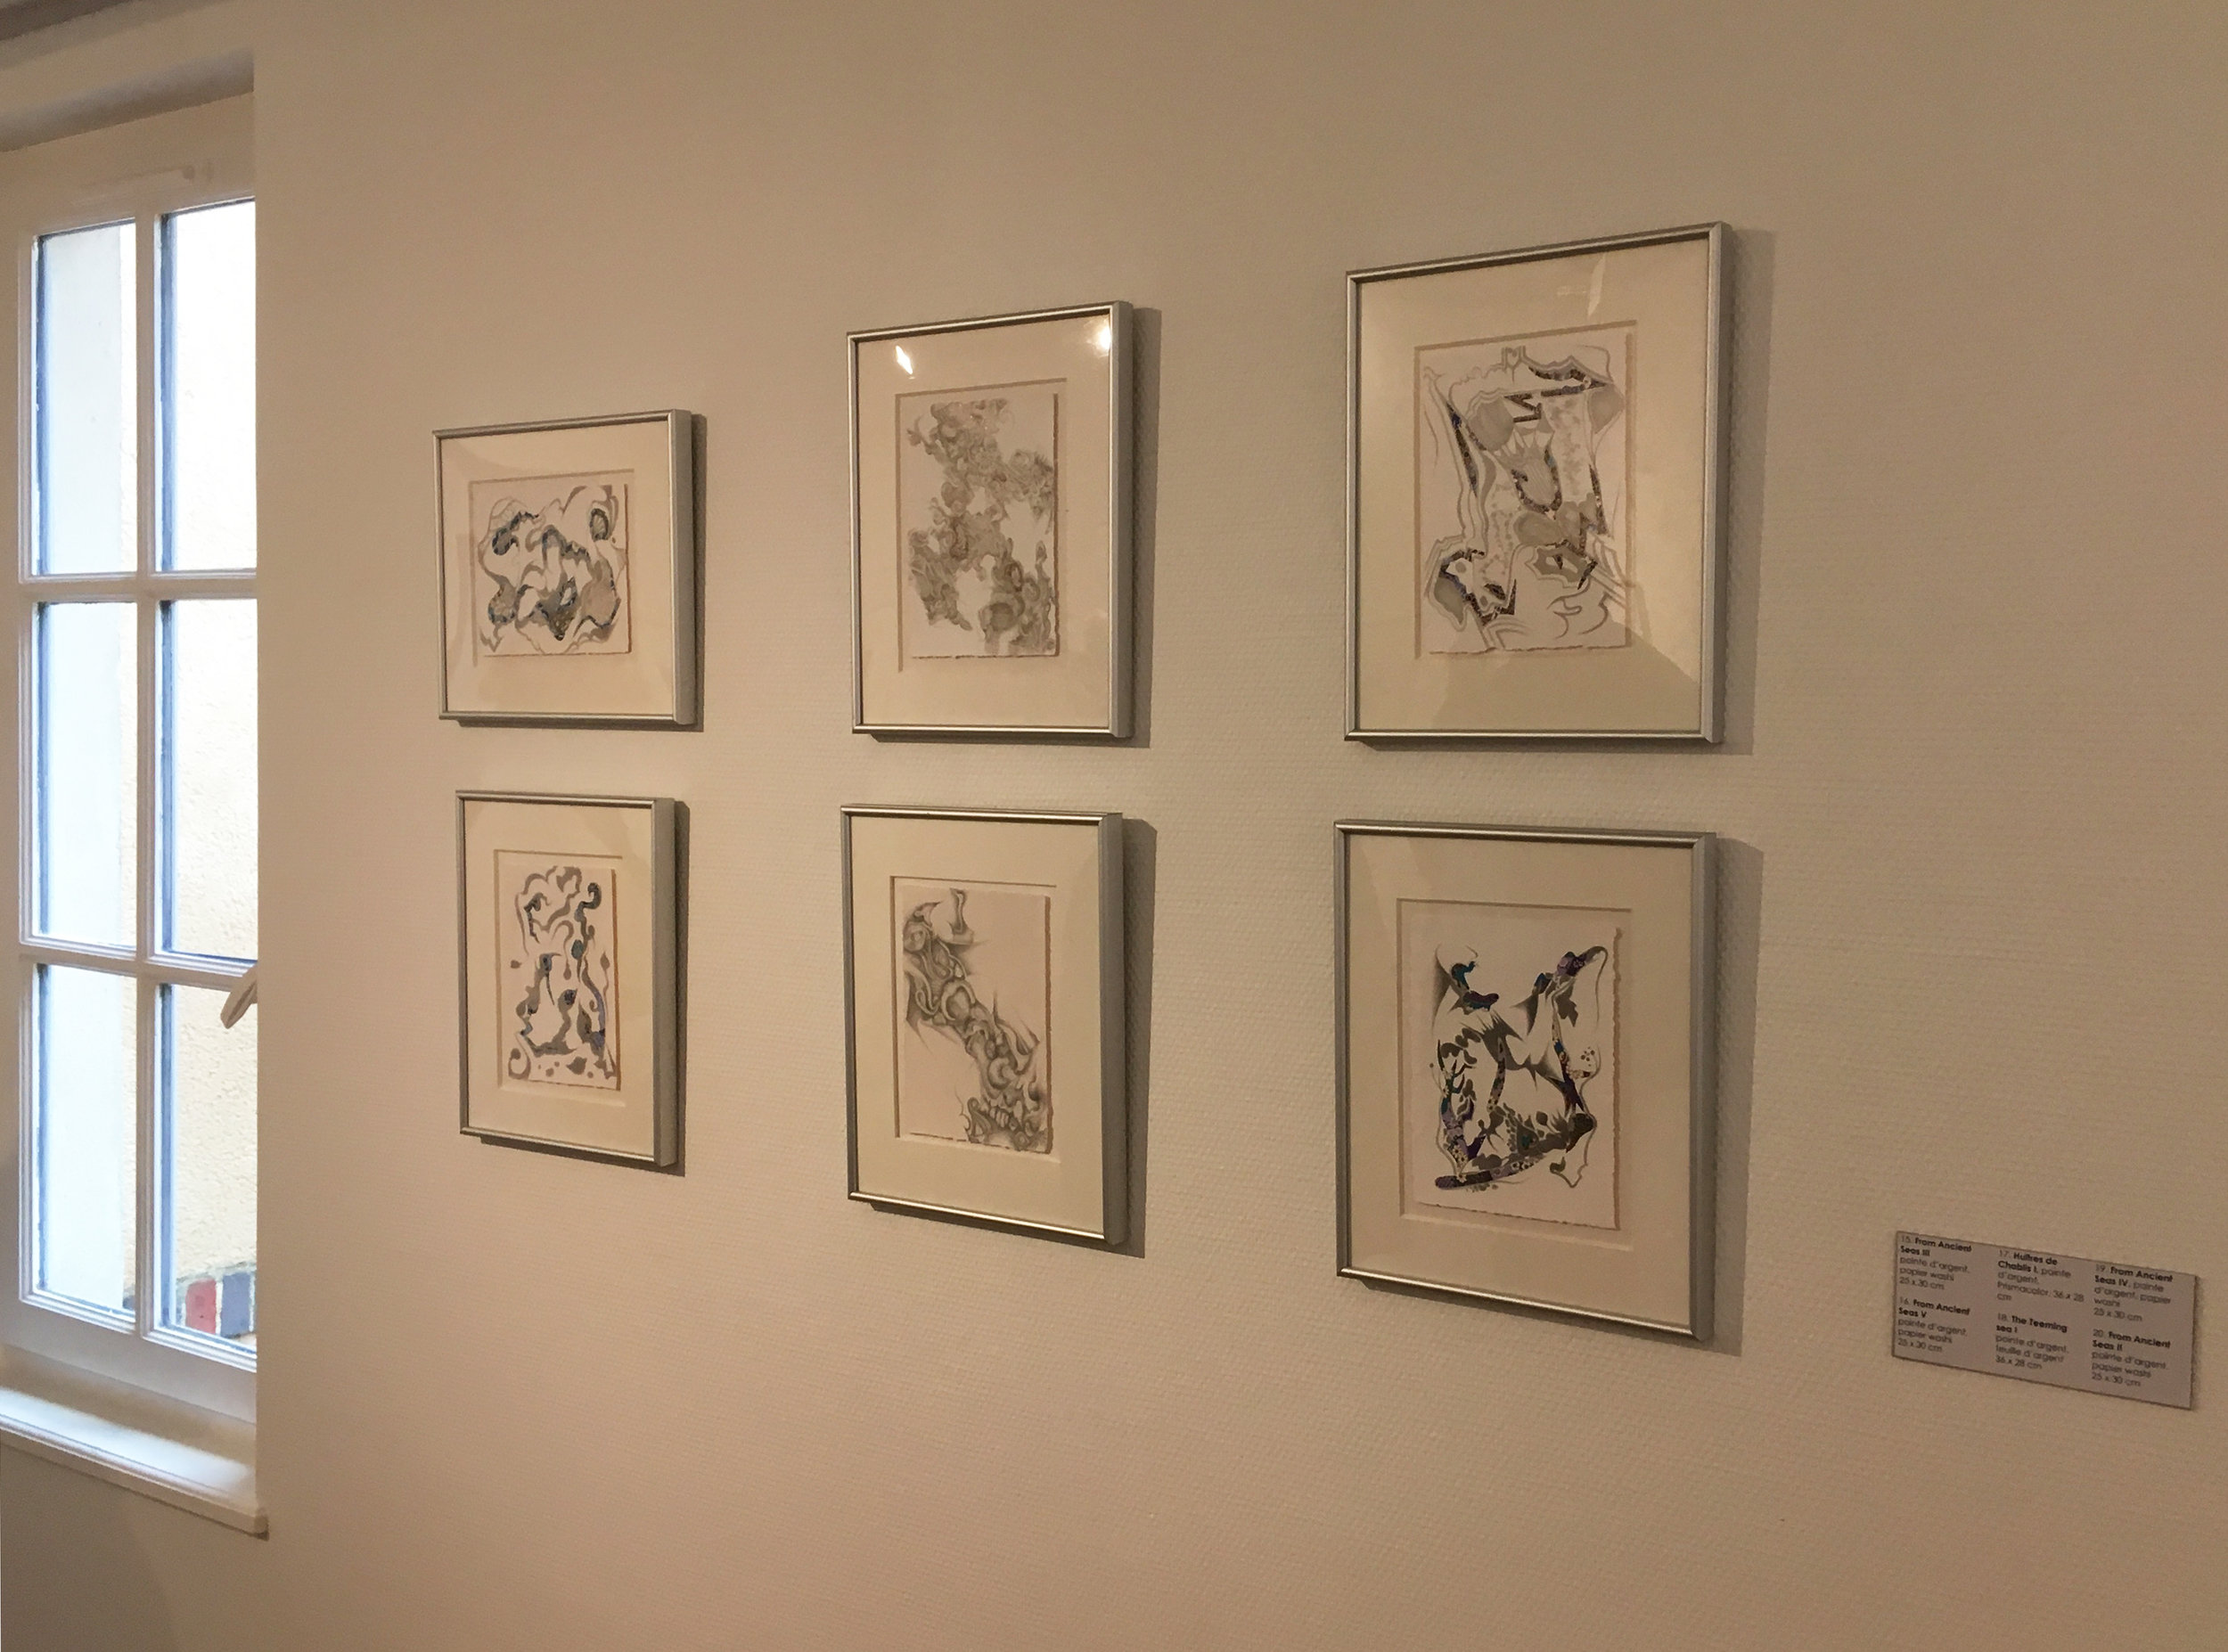 Another part of the Terratorium exhibition (Photograph courtesy of Michelle Anderson)